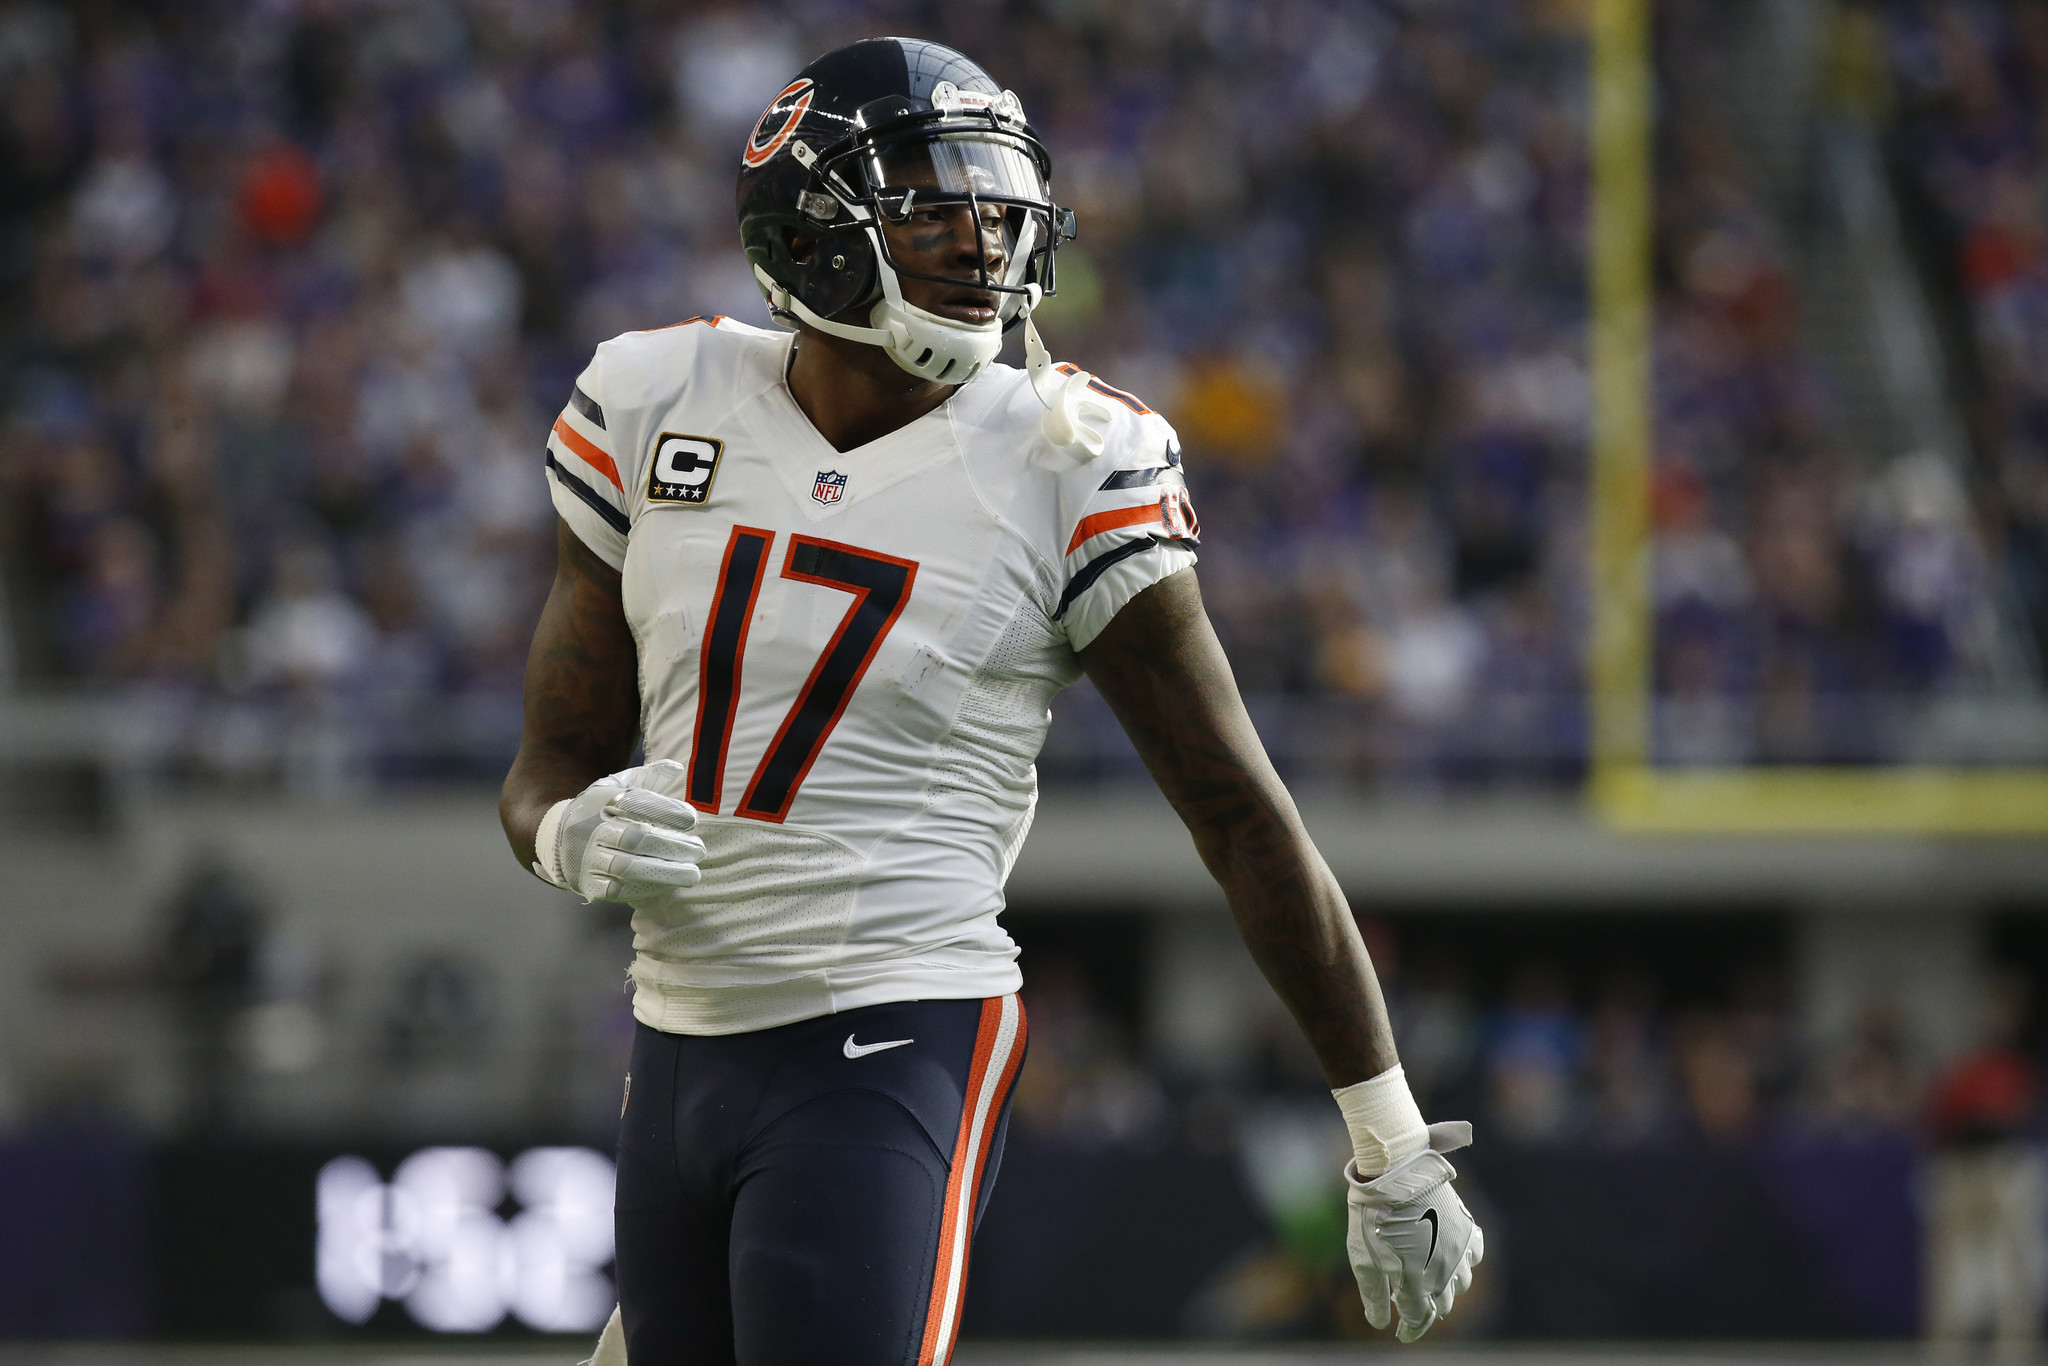 Ct-alshon-jeffery-biggs-bears-spt-0301-20170228